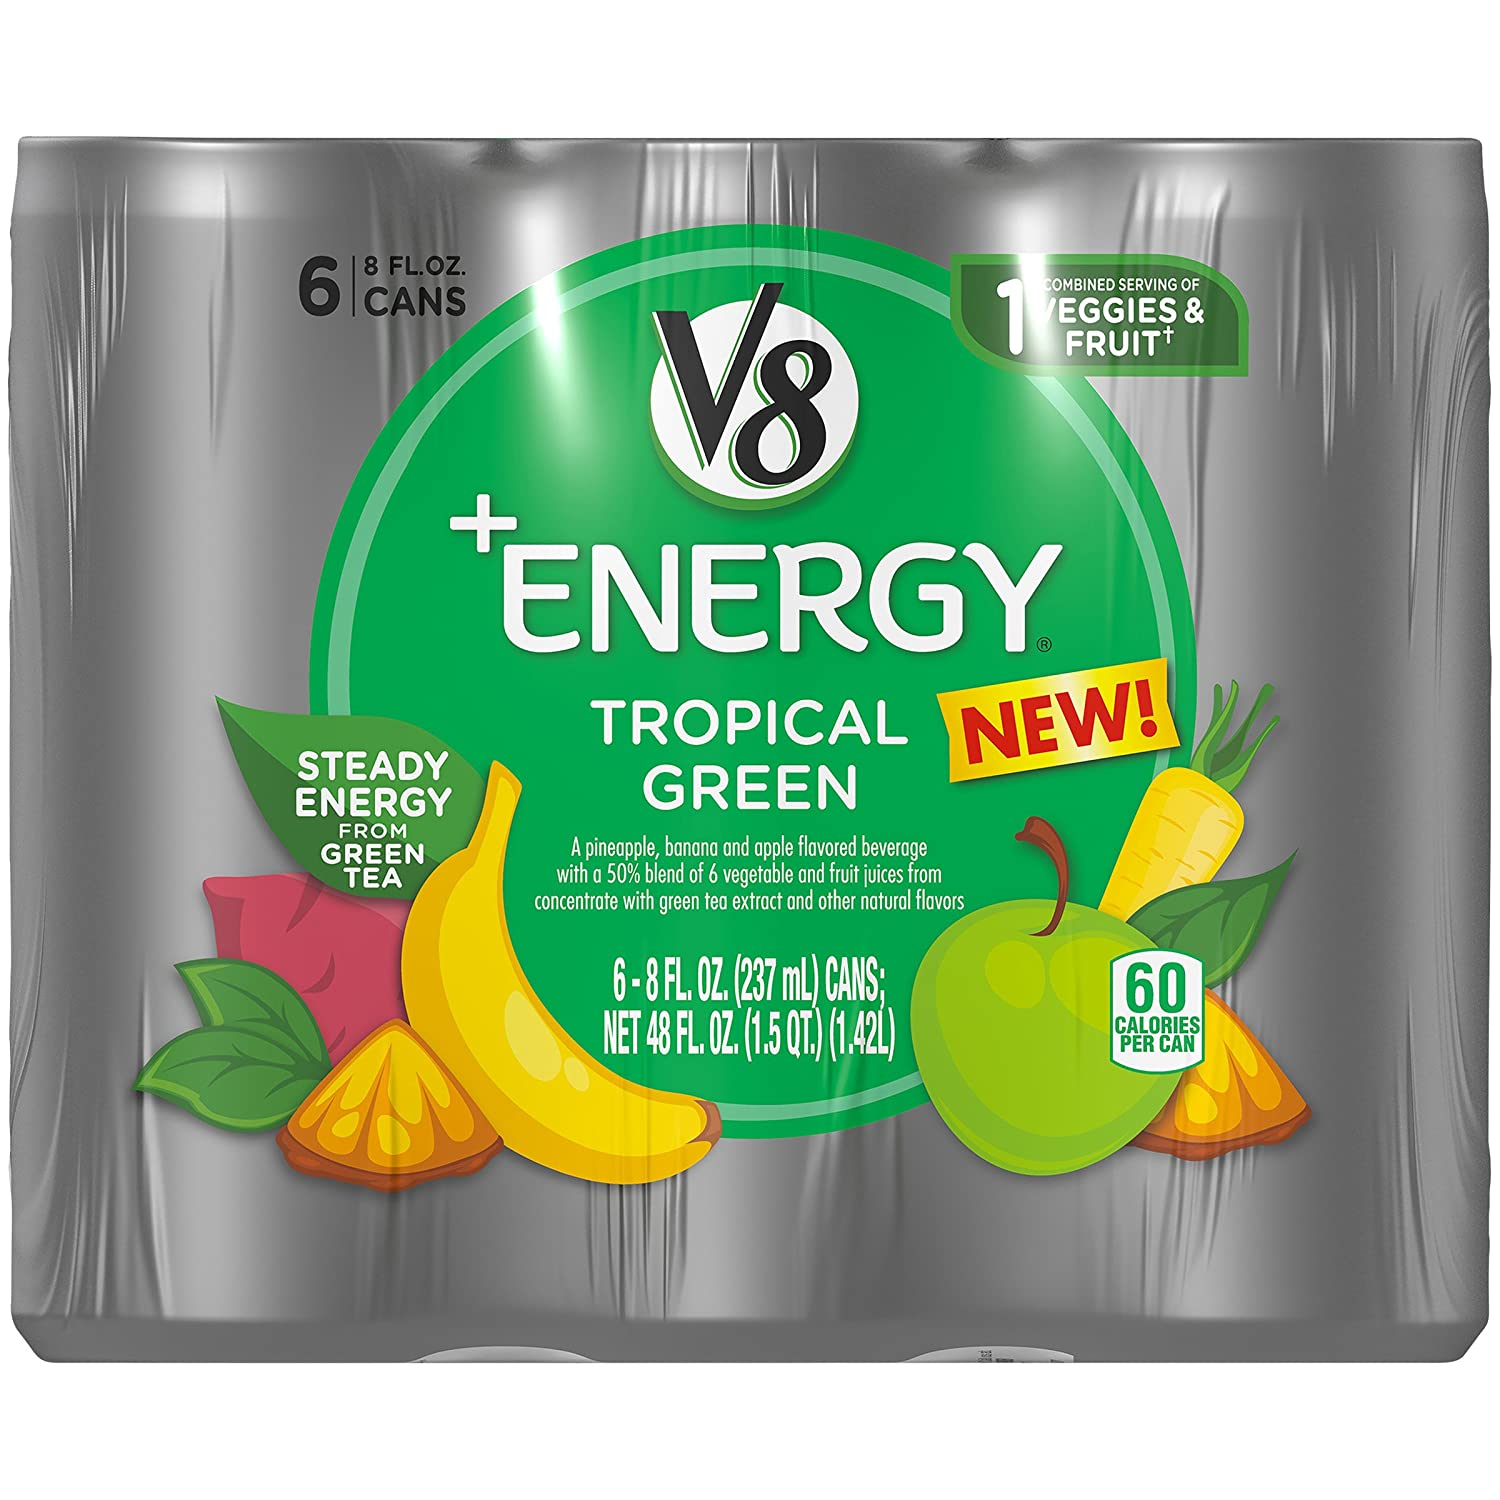 V8 +Energy Healthy Energy Drink, Natural Energy from Tea, Tropical Green, 8 Oz Can, 6 Count